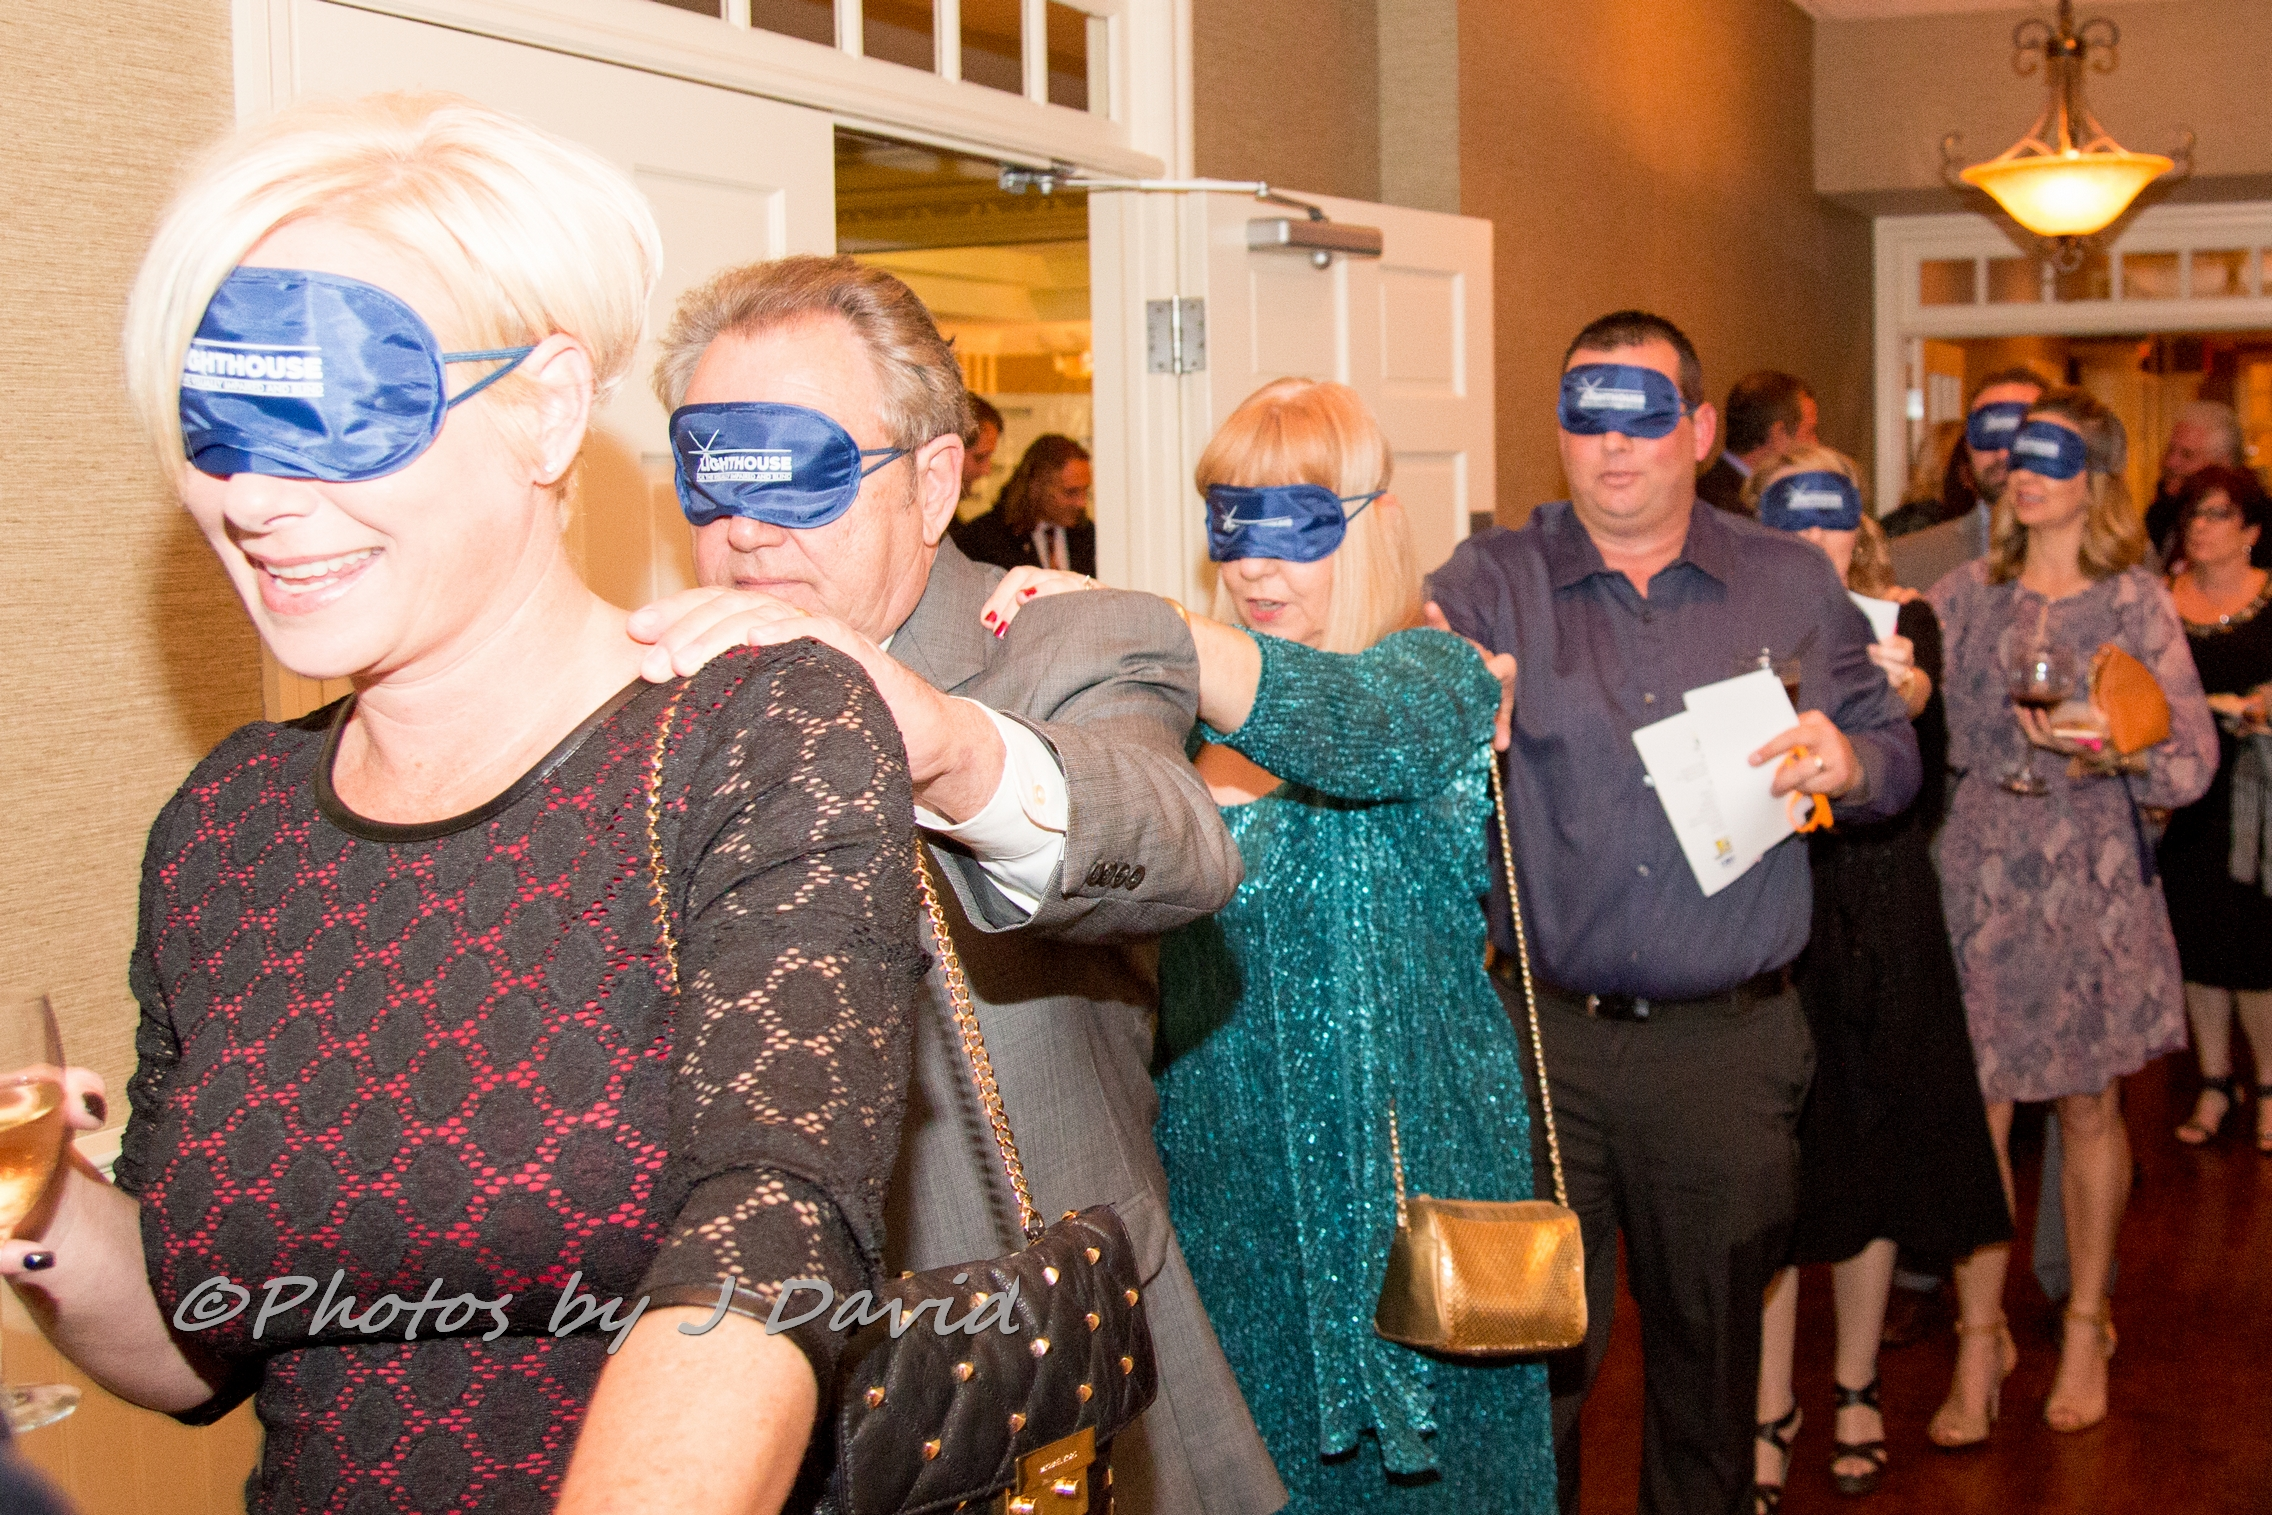 Diners enter in the dark wearing blindfolds